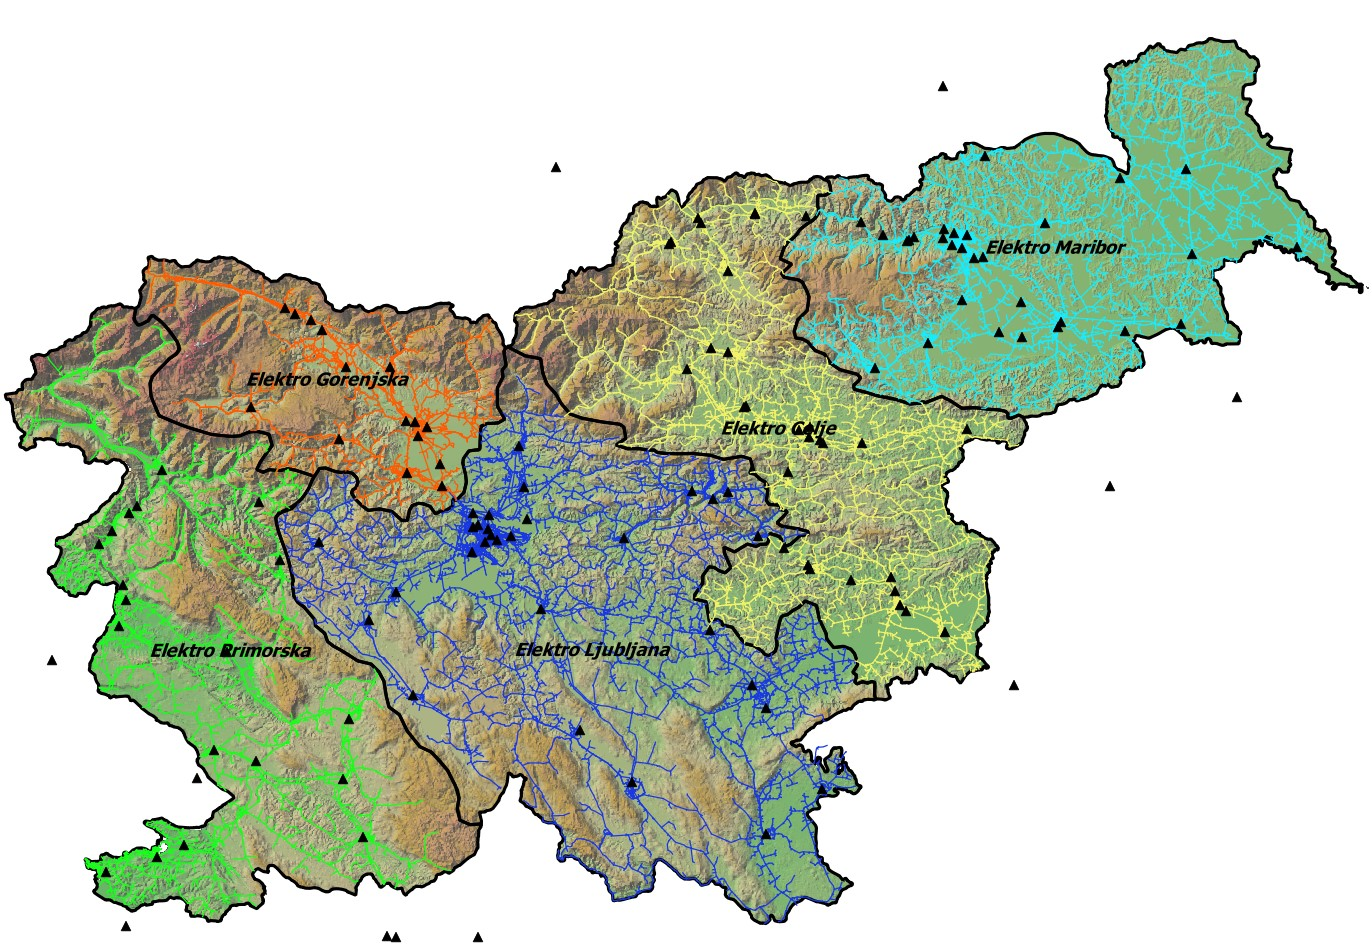 MV distribution network analyses (10 kV and 20 kV) in Slovenia in 2015